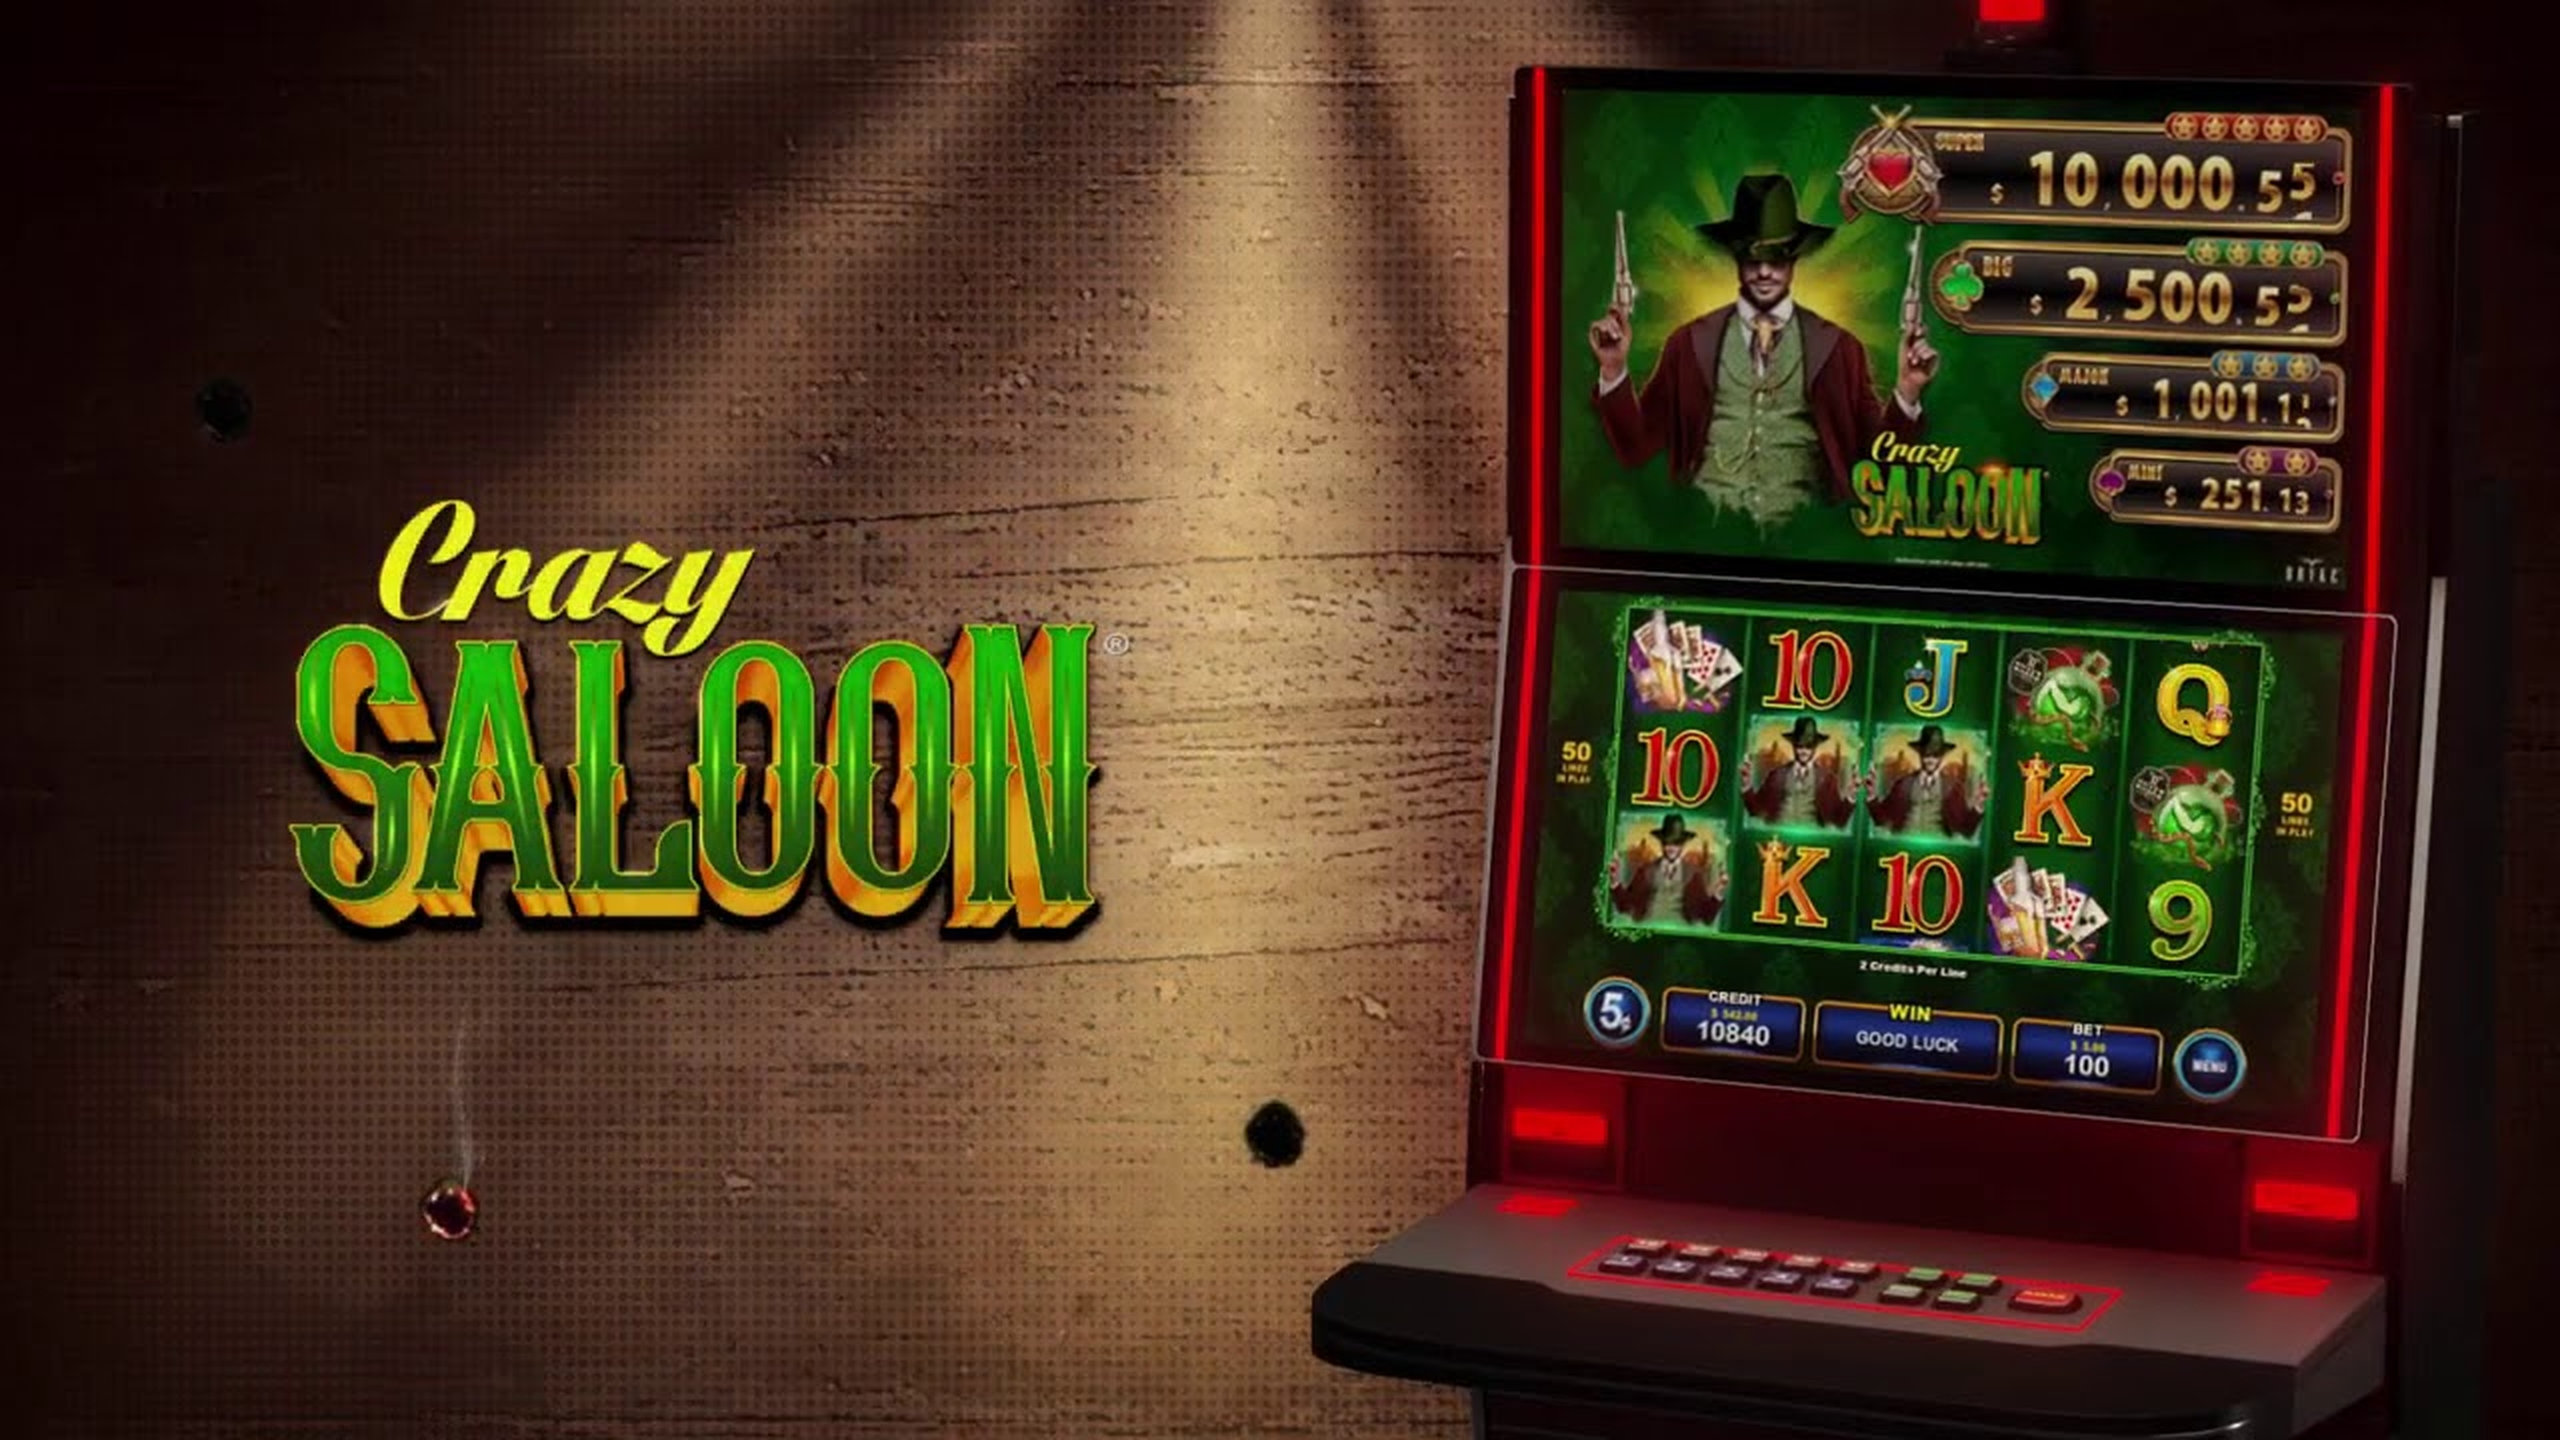 The Crazy Saloon Online Slot Demo Game by Zitro